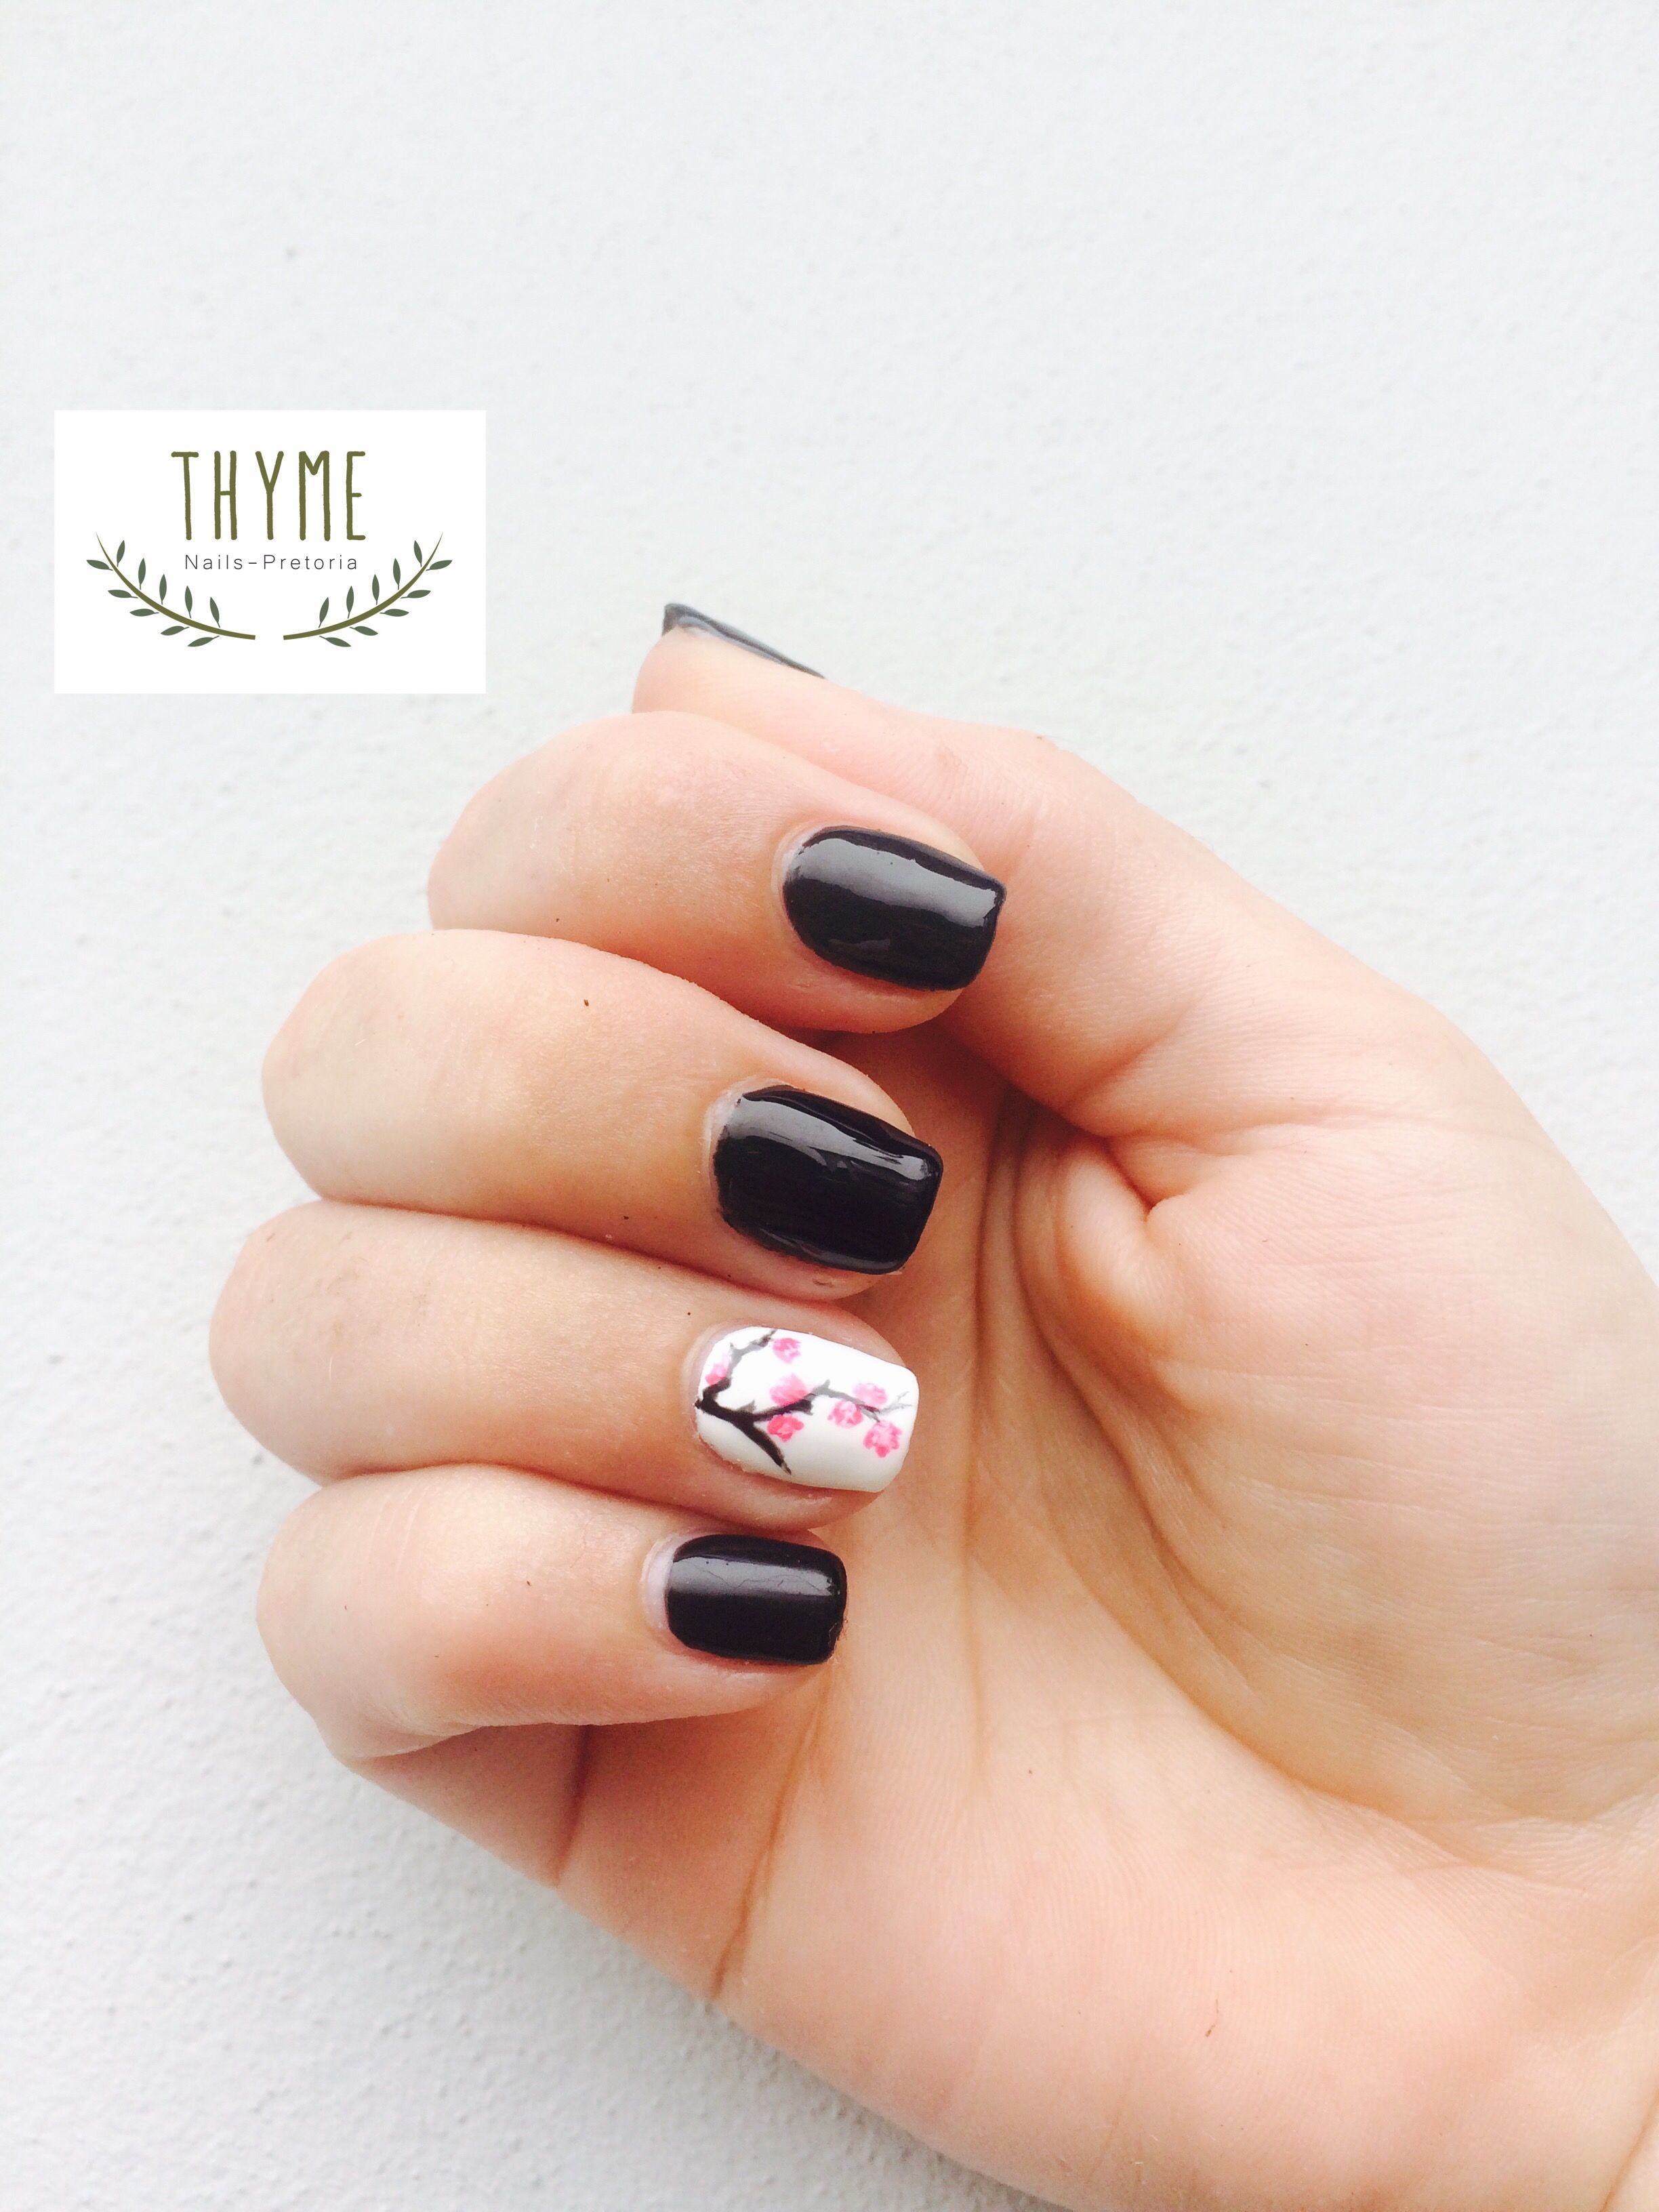 Cherry blossom nail art | Nails by Thyme | Pinterest | Cherry blossoms